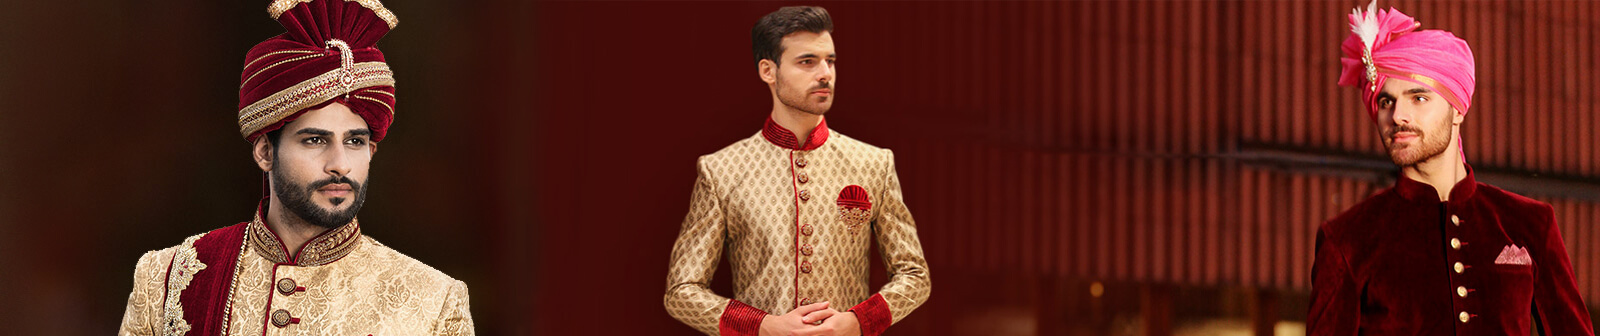 Top Groom Wedding Wear in Goa